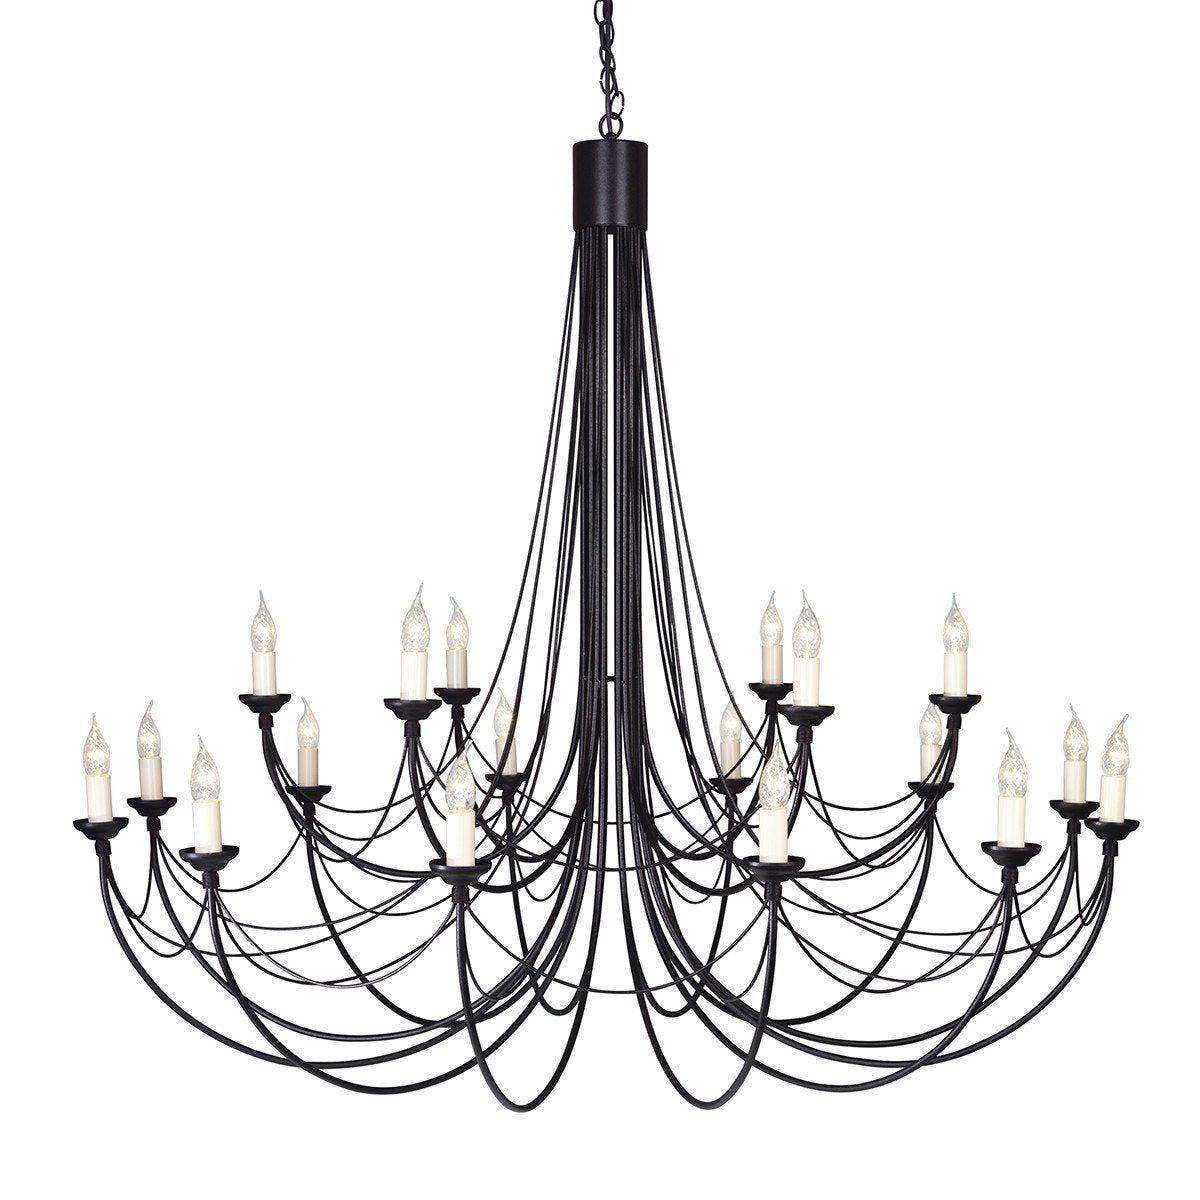 Carisbrooke 18 Arm Chandelier Black - London Lighting - 1